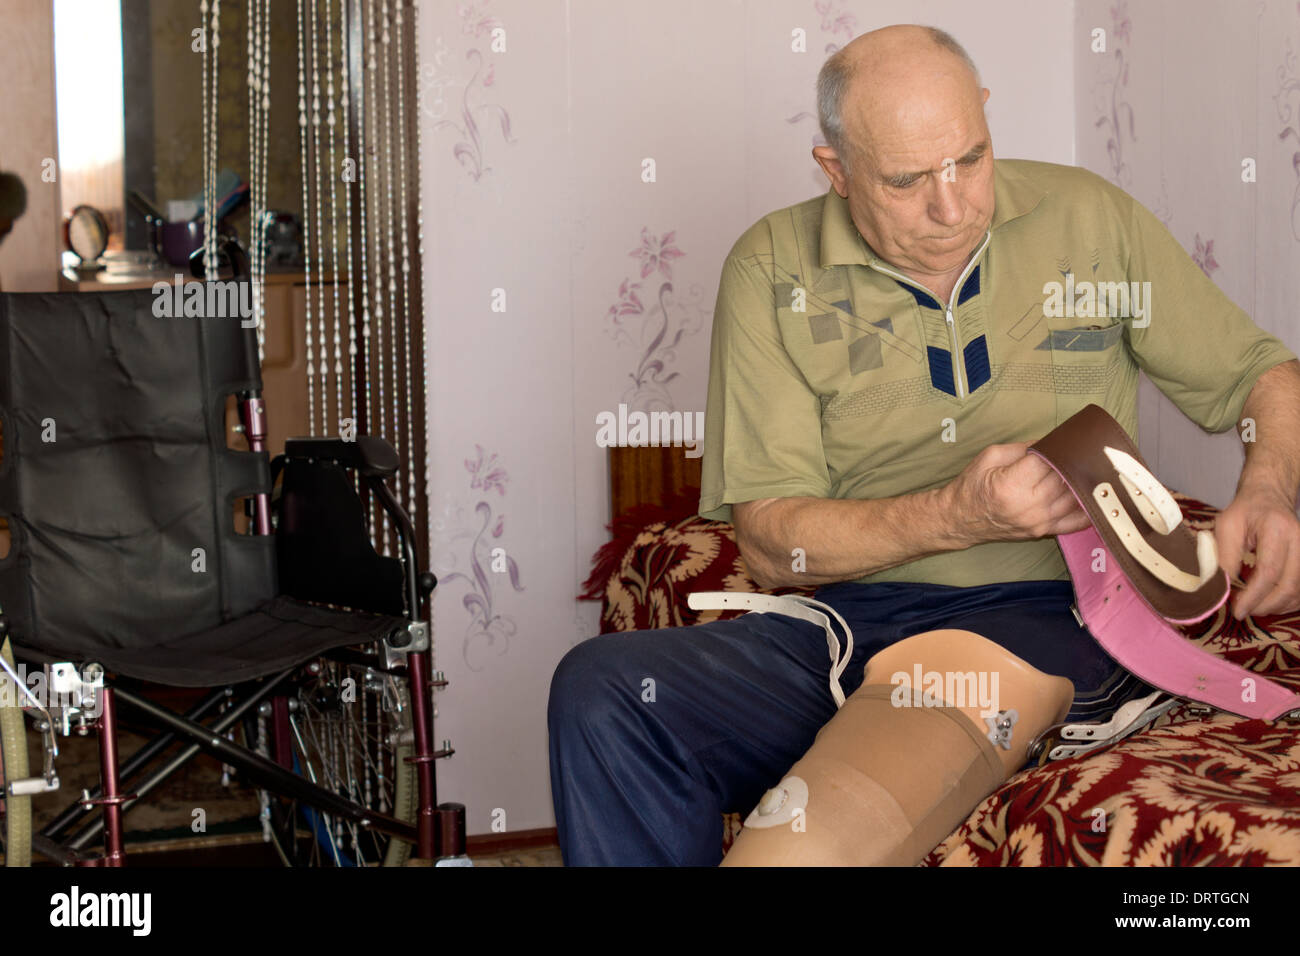 Senior man sitting on his bed fitting a prosthetic leg following an above the knee amputation sorting out the attachment straps - Stock Image